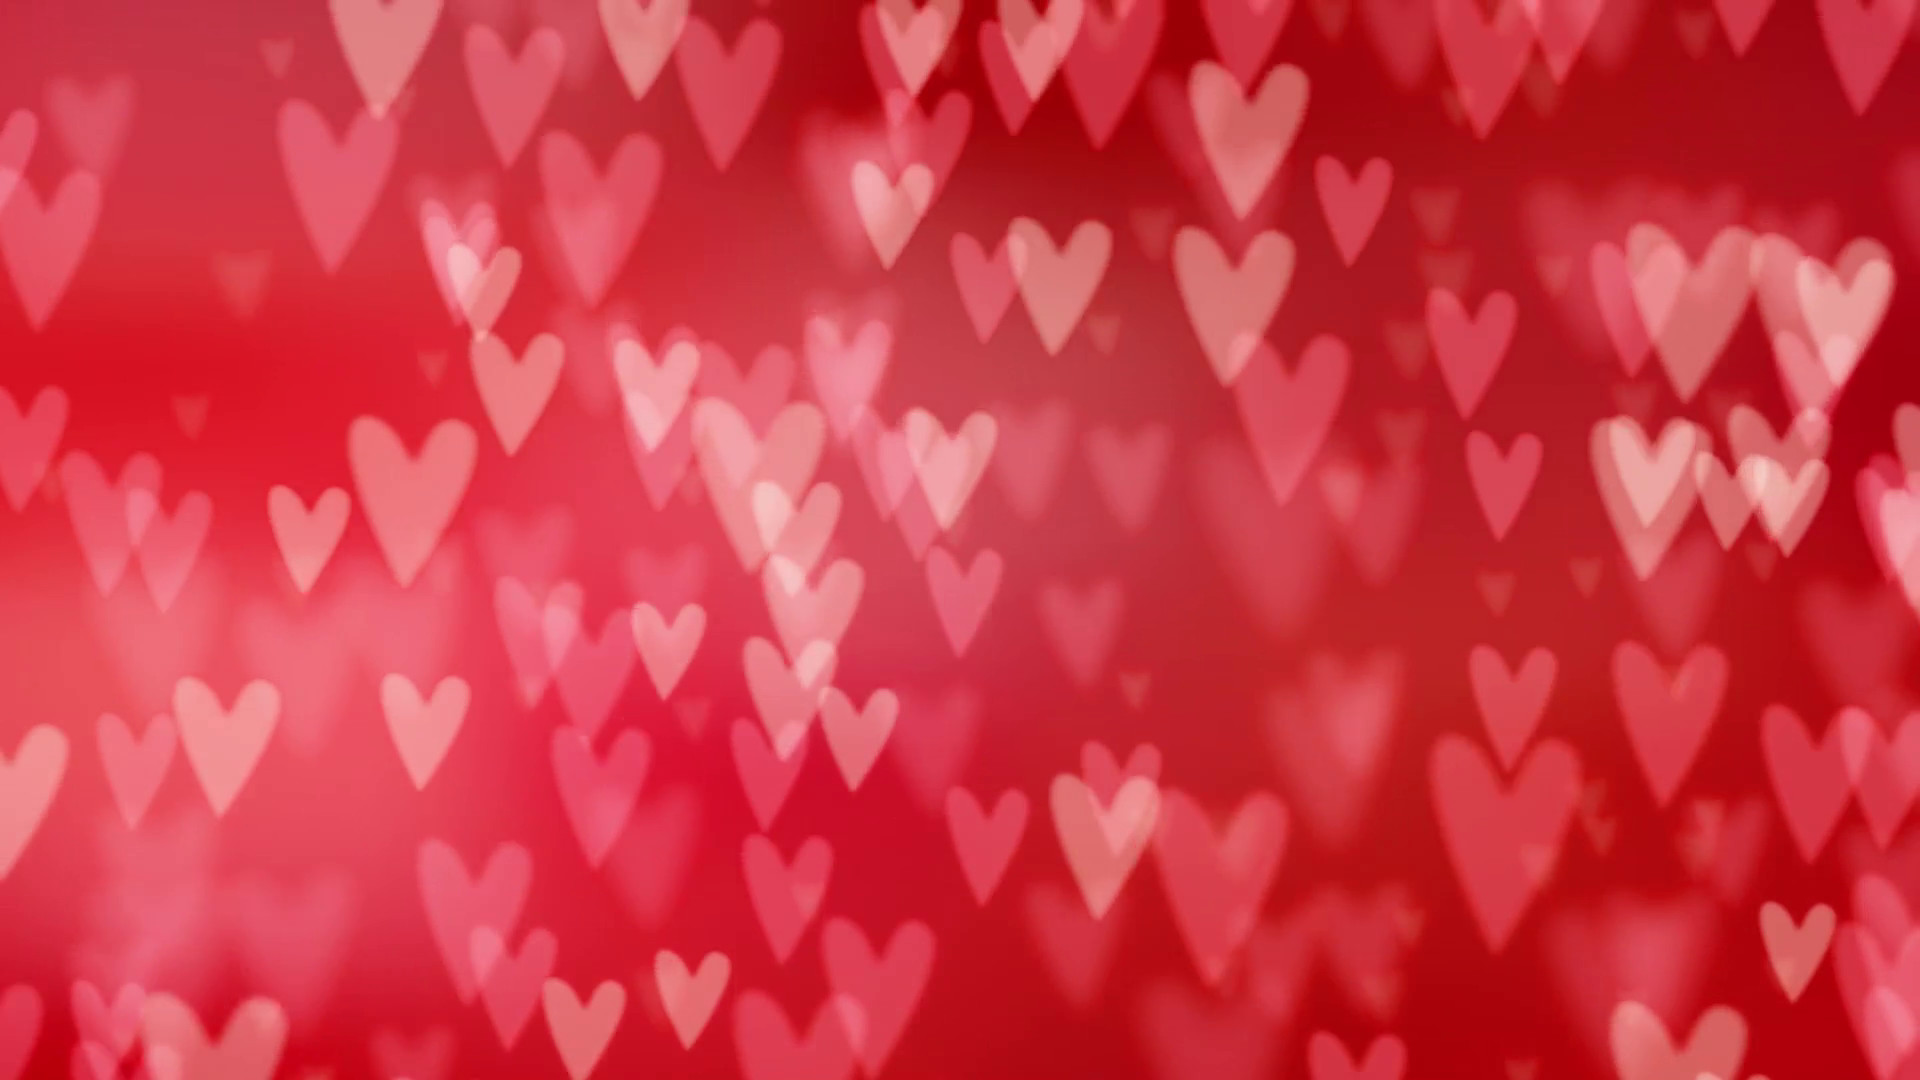 Falling Hearts Wallpaper Red Hearts Background 183 ① Wallpapertag